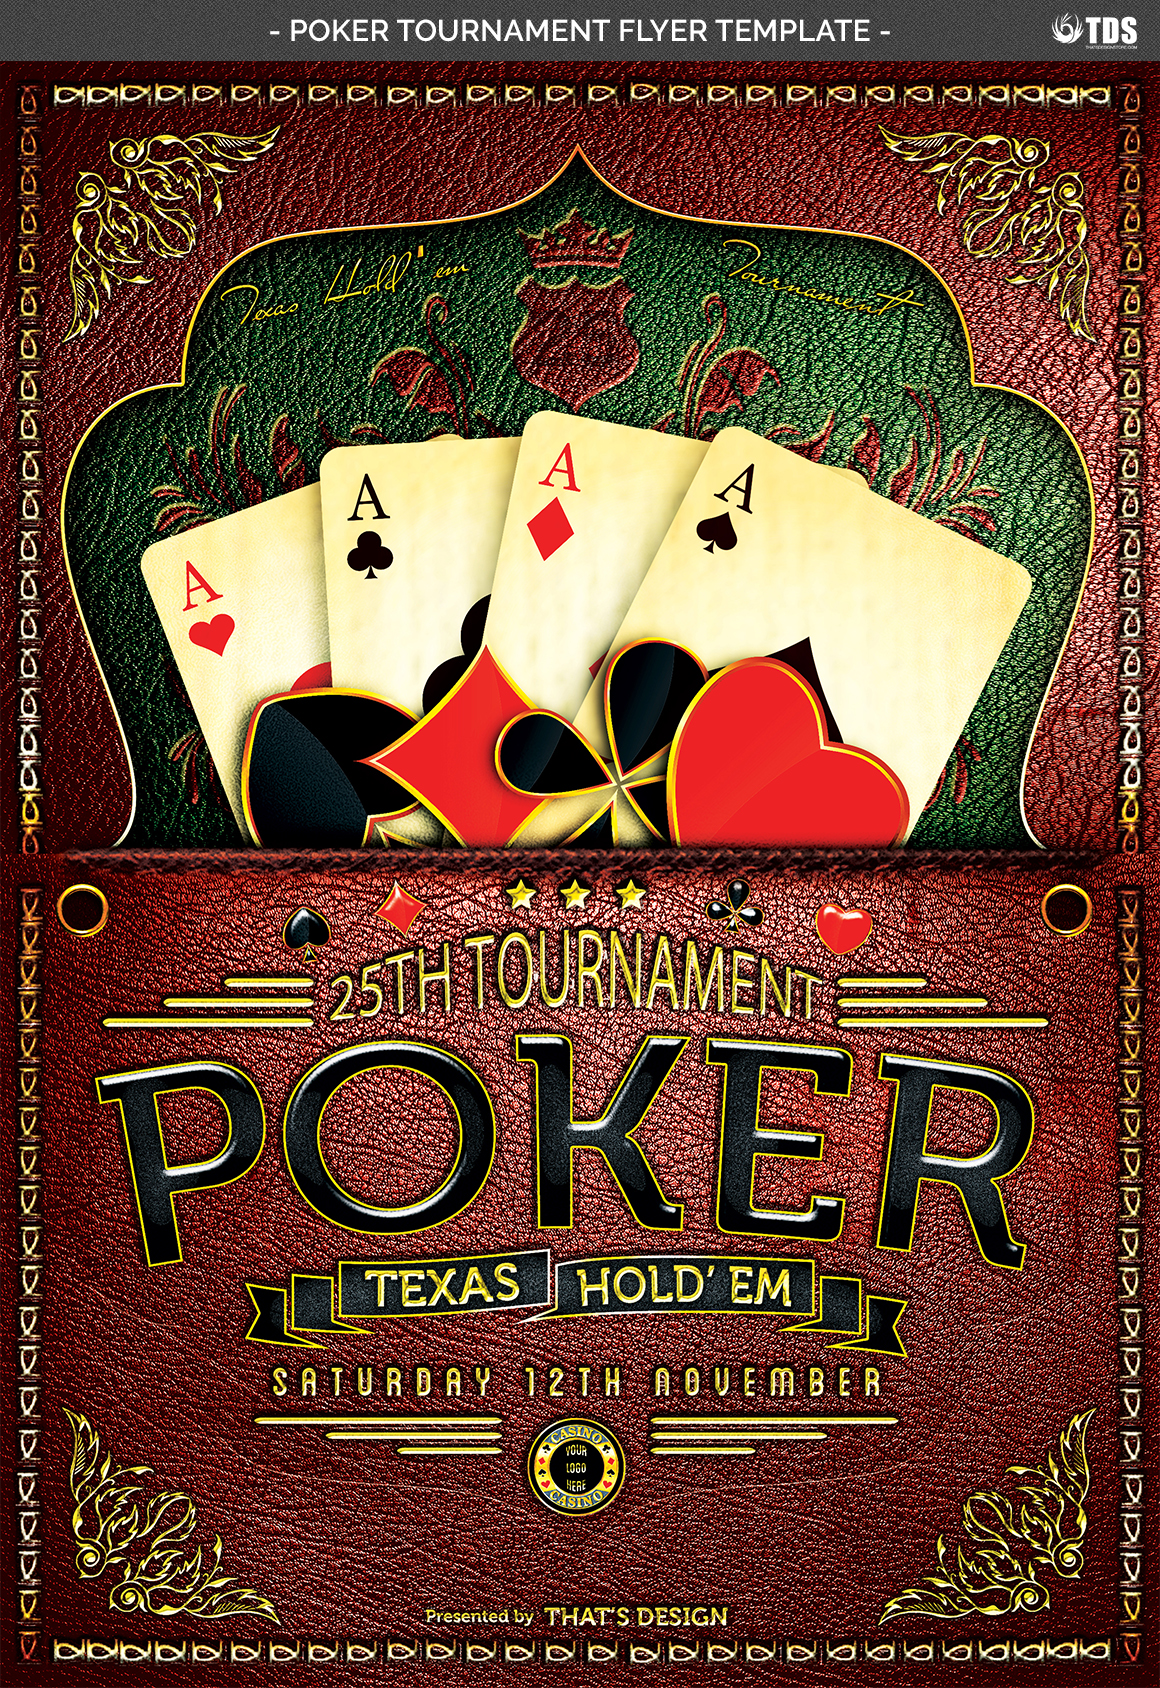 Poker Tournament Flyer Template example image 5